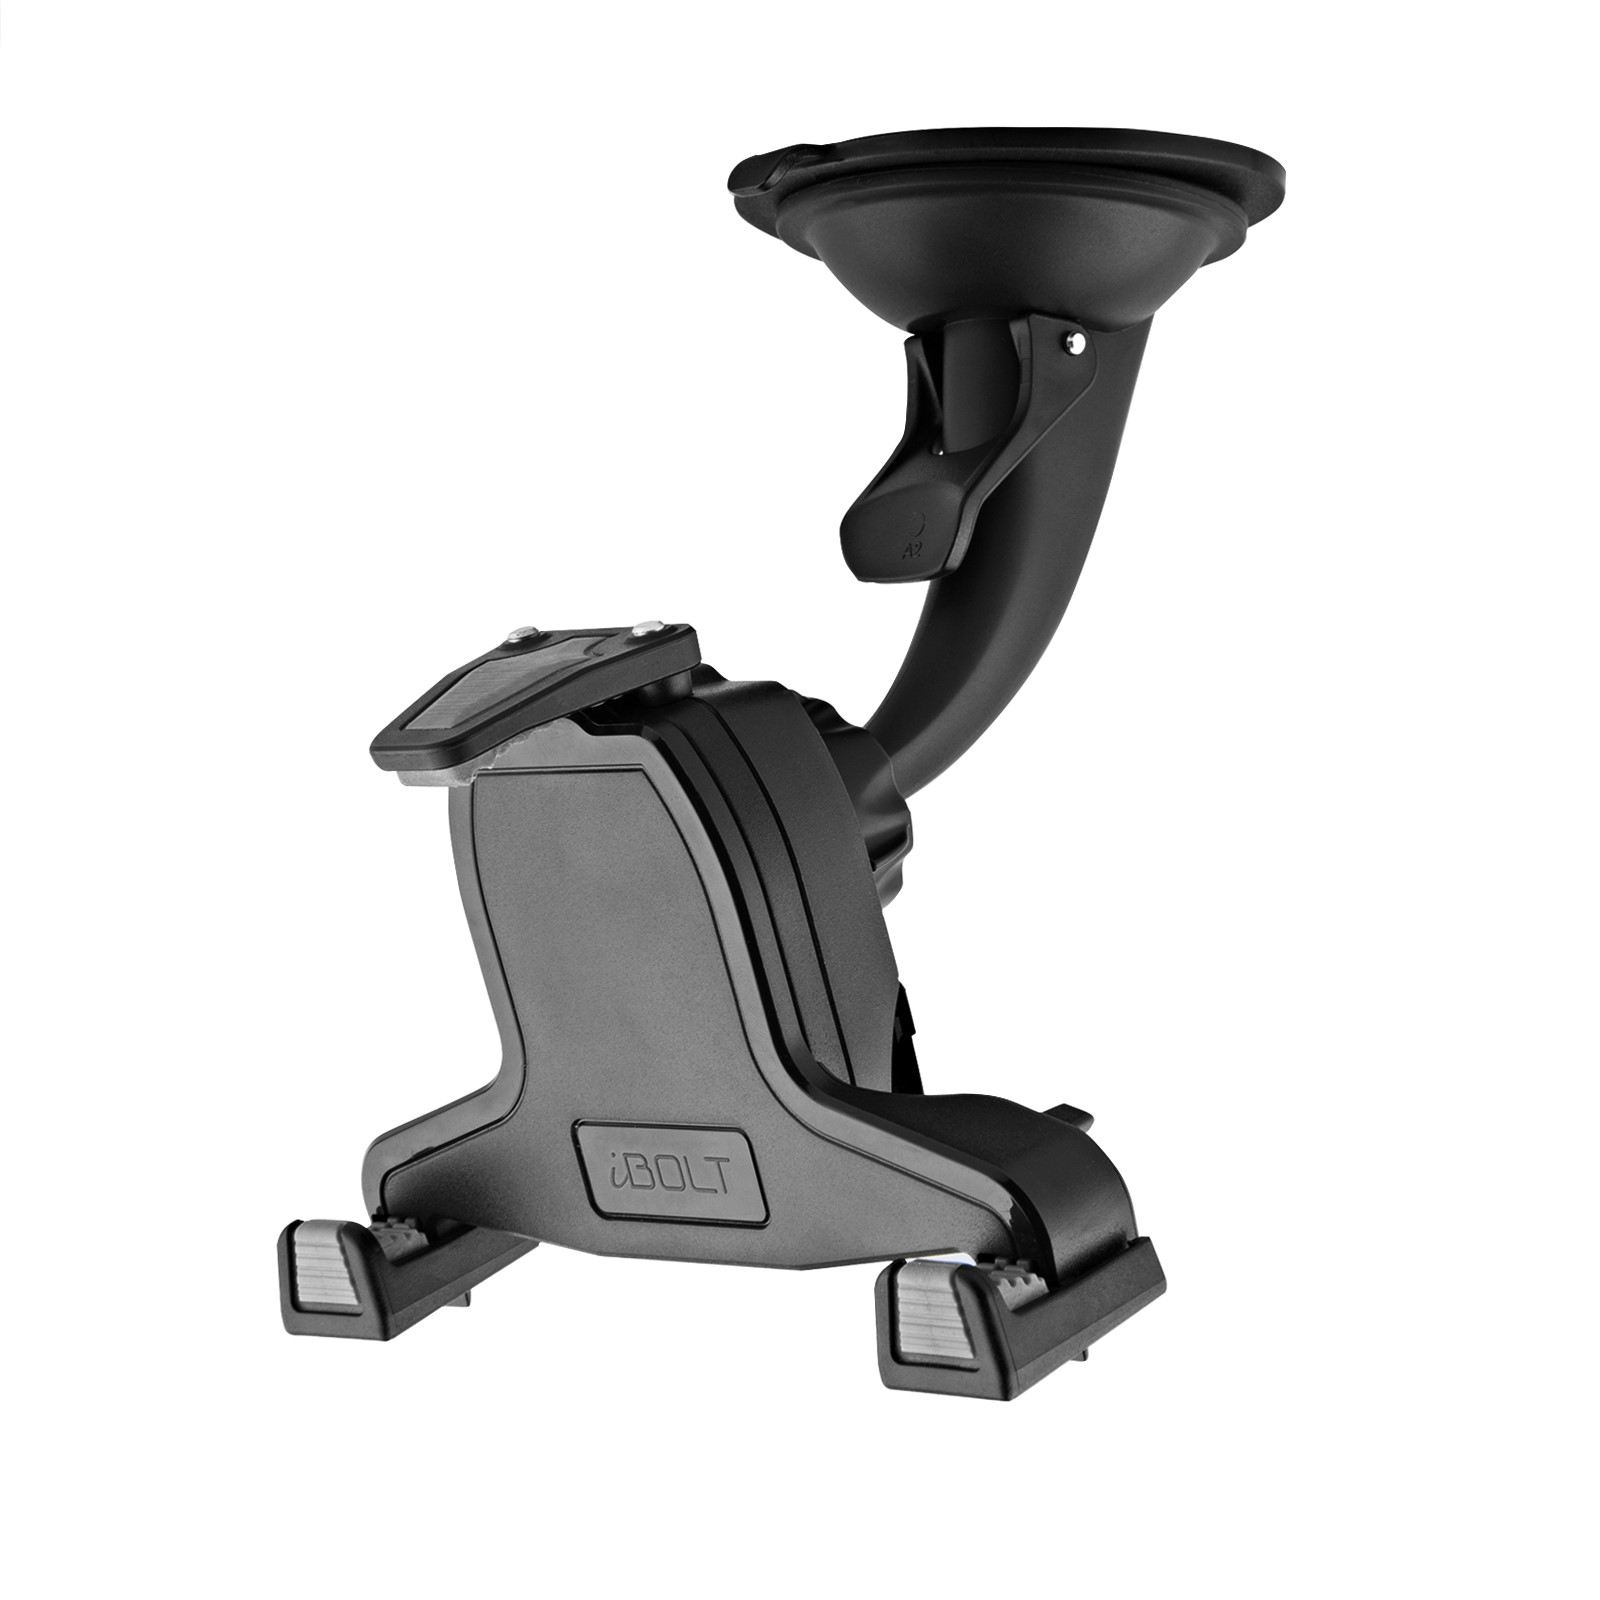 iBolt xProDock Active Car Dock/Holder/Mount for Samsung Galaxy S3, S4, Note 2, & Note 3 (Black) IBO-XPRODOCK-A1